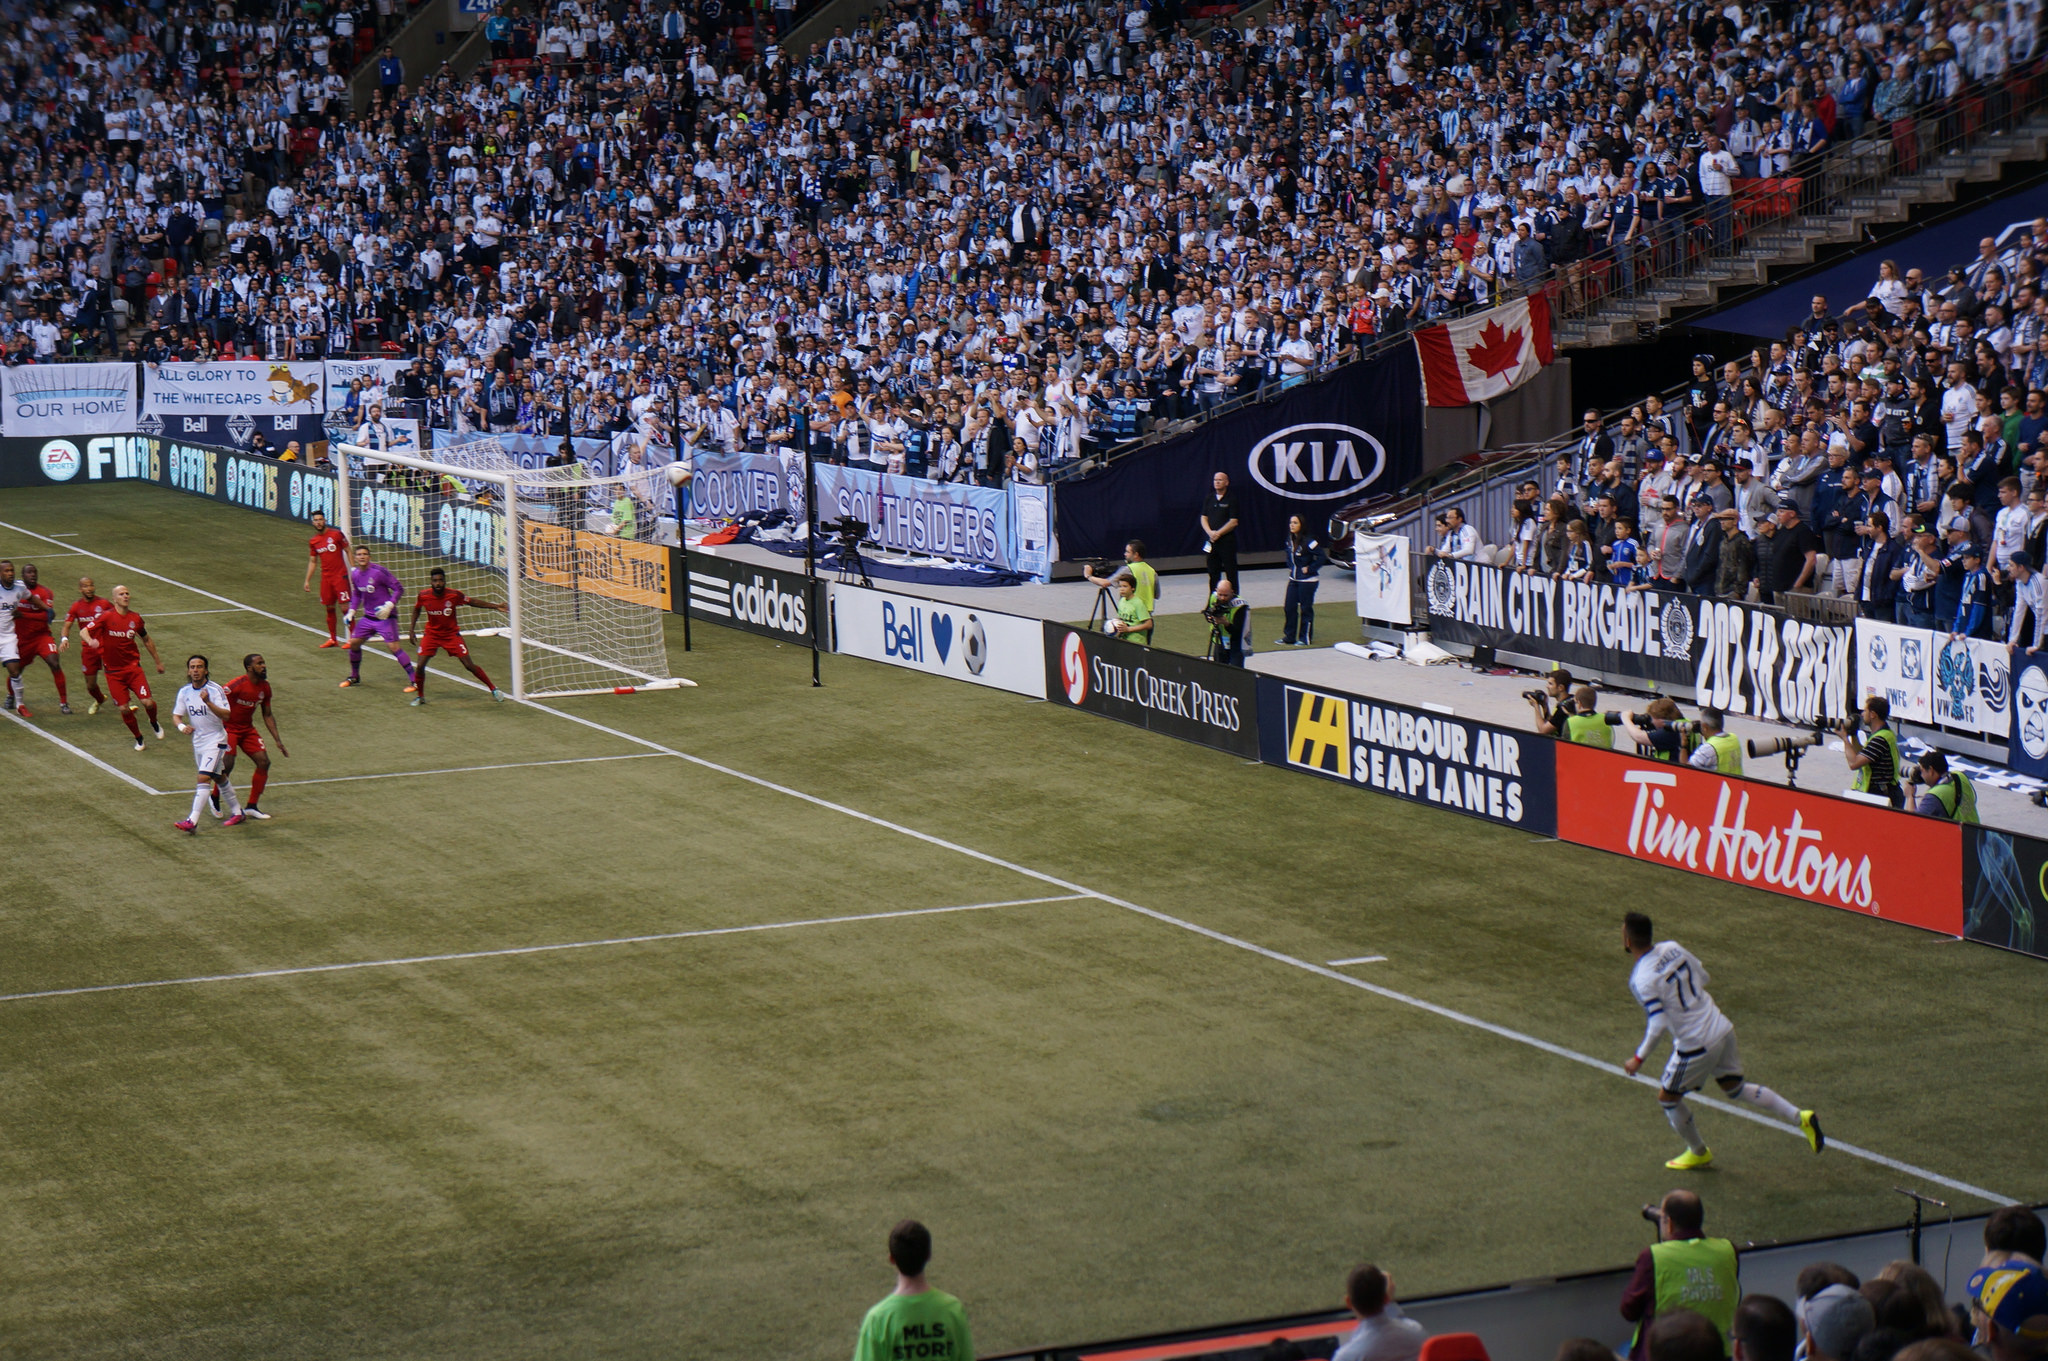 Captain Pedro Morales takes a corner in the Whitecaps' home opener against Toronto FC. (Photo RosieTulips/Flickr)